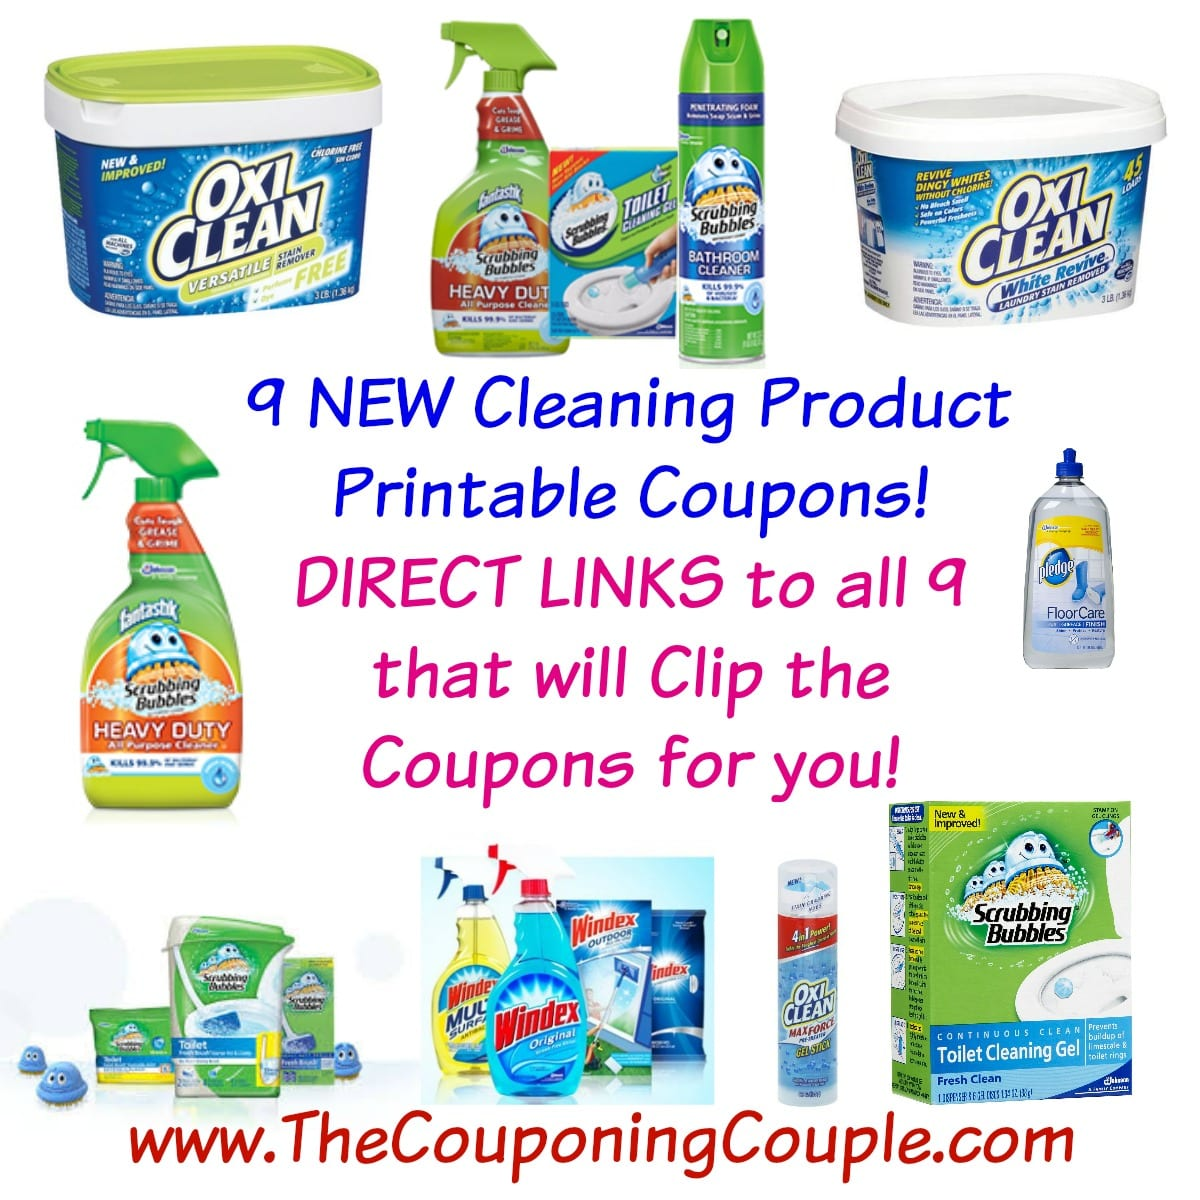 Scrubbing Bubbles Bathroom CLEANING products on any TWO, coupon states